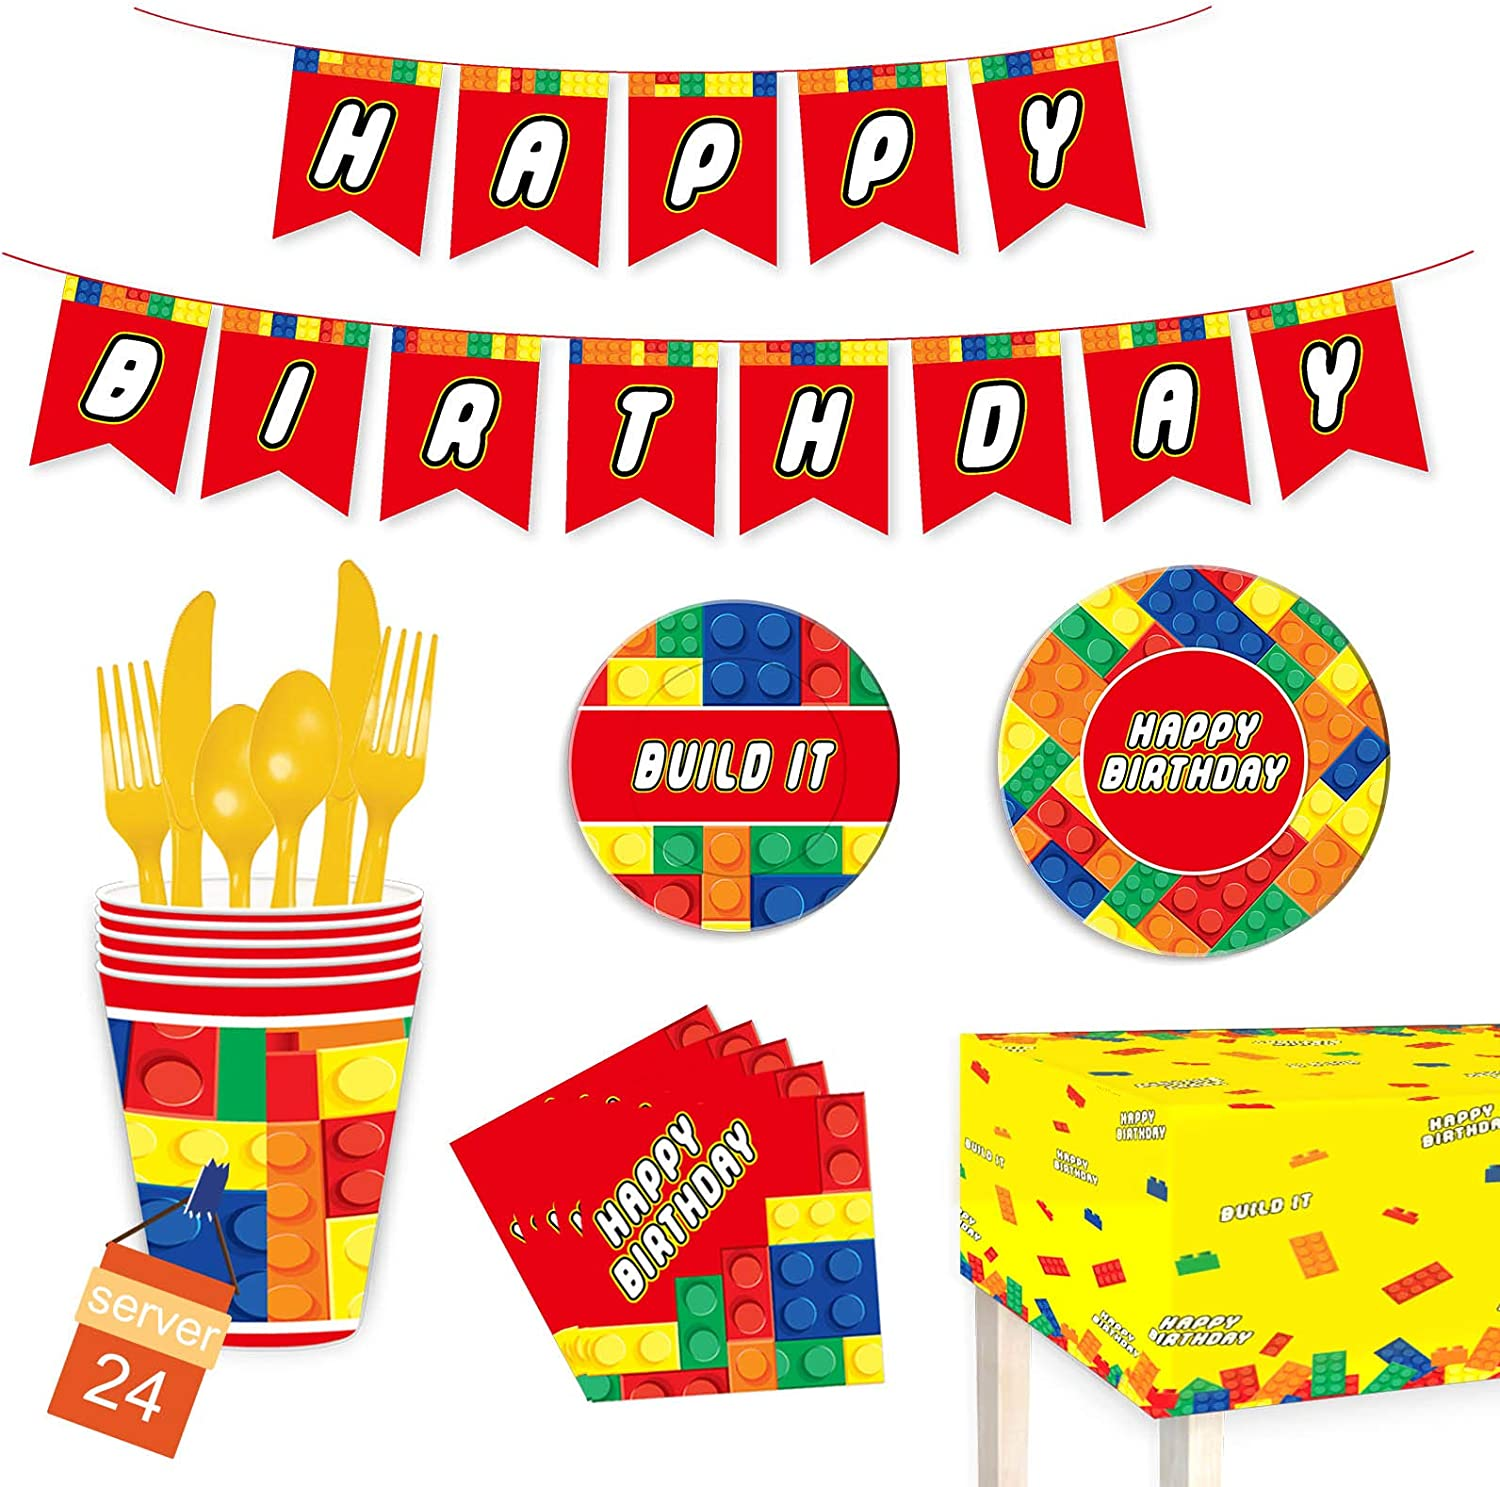 PRATYUS Building Block Party Supplies Including Plates, Cups, Napkins, Spoons, Forks, Knives, Tablecloth and Banner, Disposable Dinnerware Set for Colorful Building Party Decorations, Serves 24 Guests